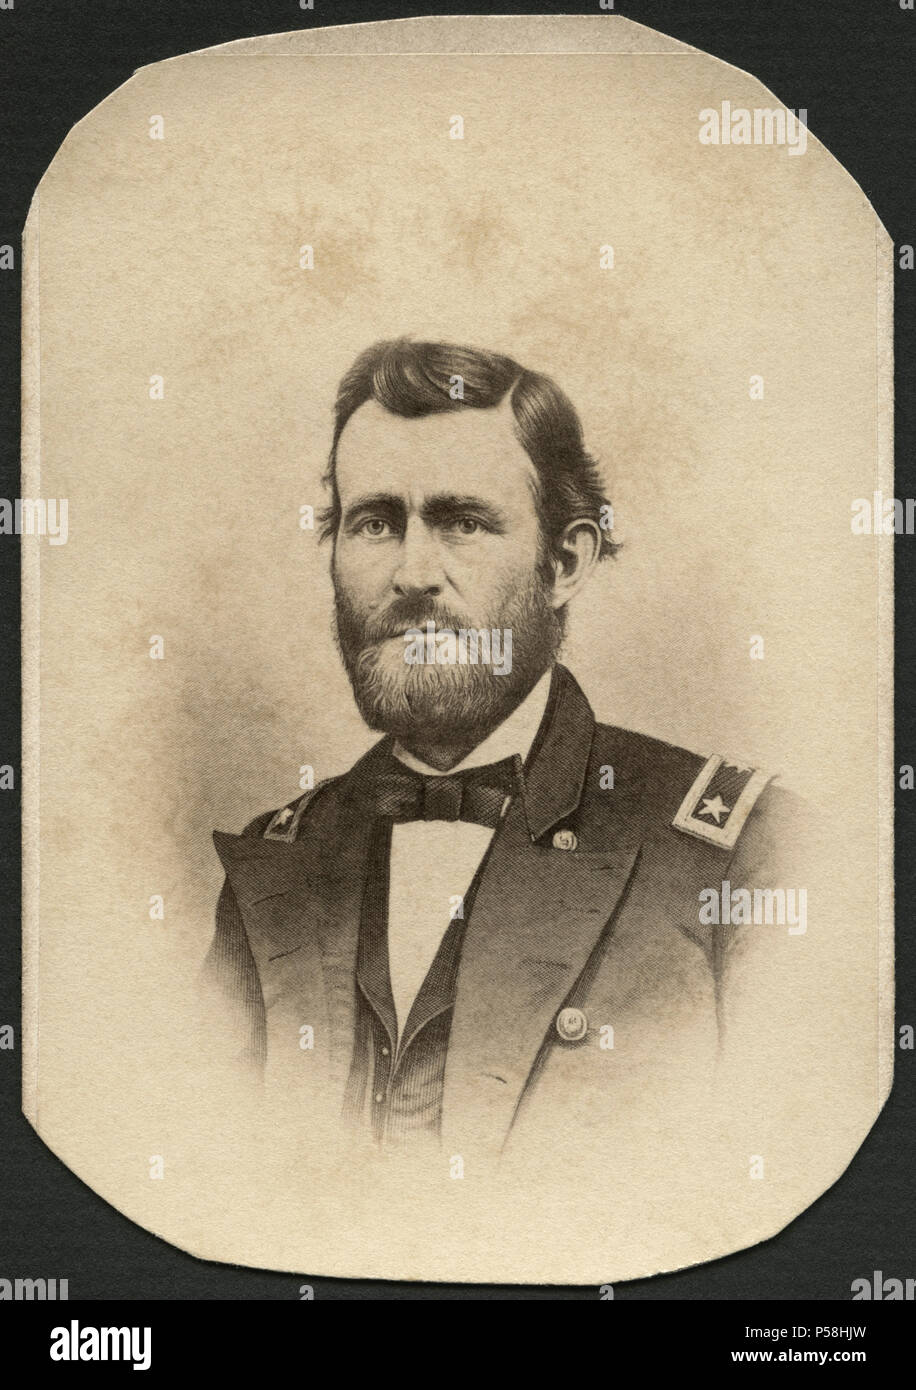 Ulysses S. Grant (1822-1885), 18th President of the United States, Portrait by Joseph Ward, late 1860's - Stock Image